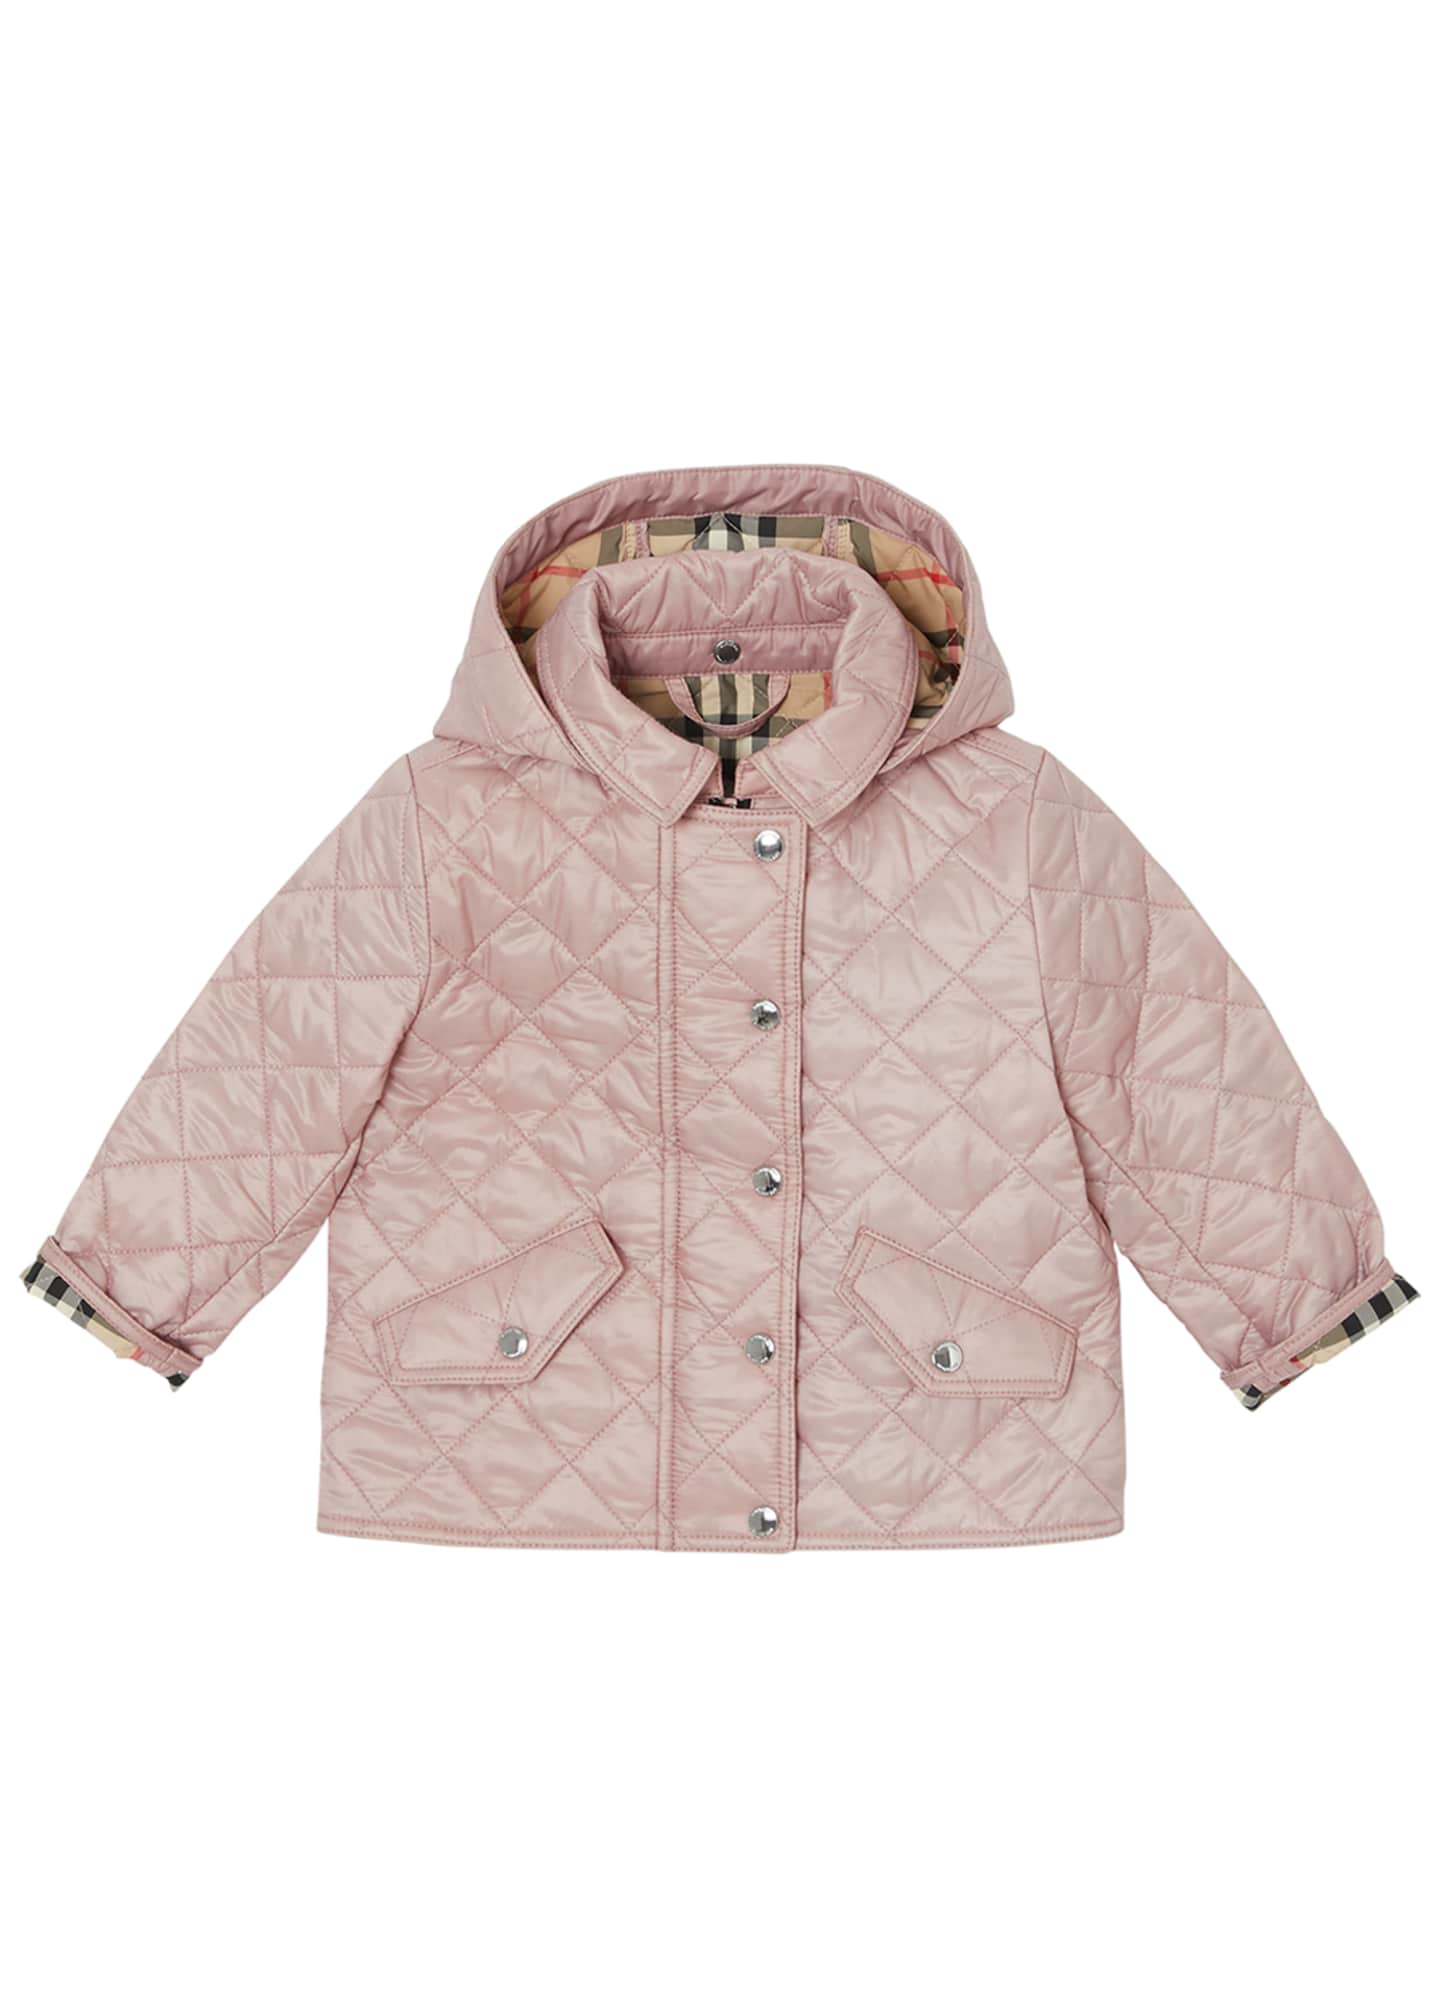 Burberry Ilana Quilted Hooded Jacket, Size 6M-2